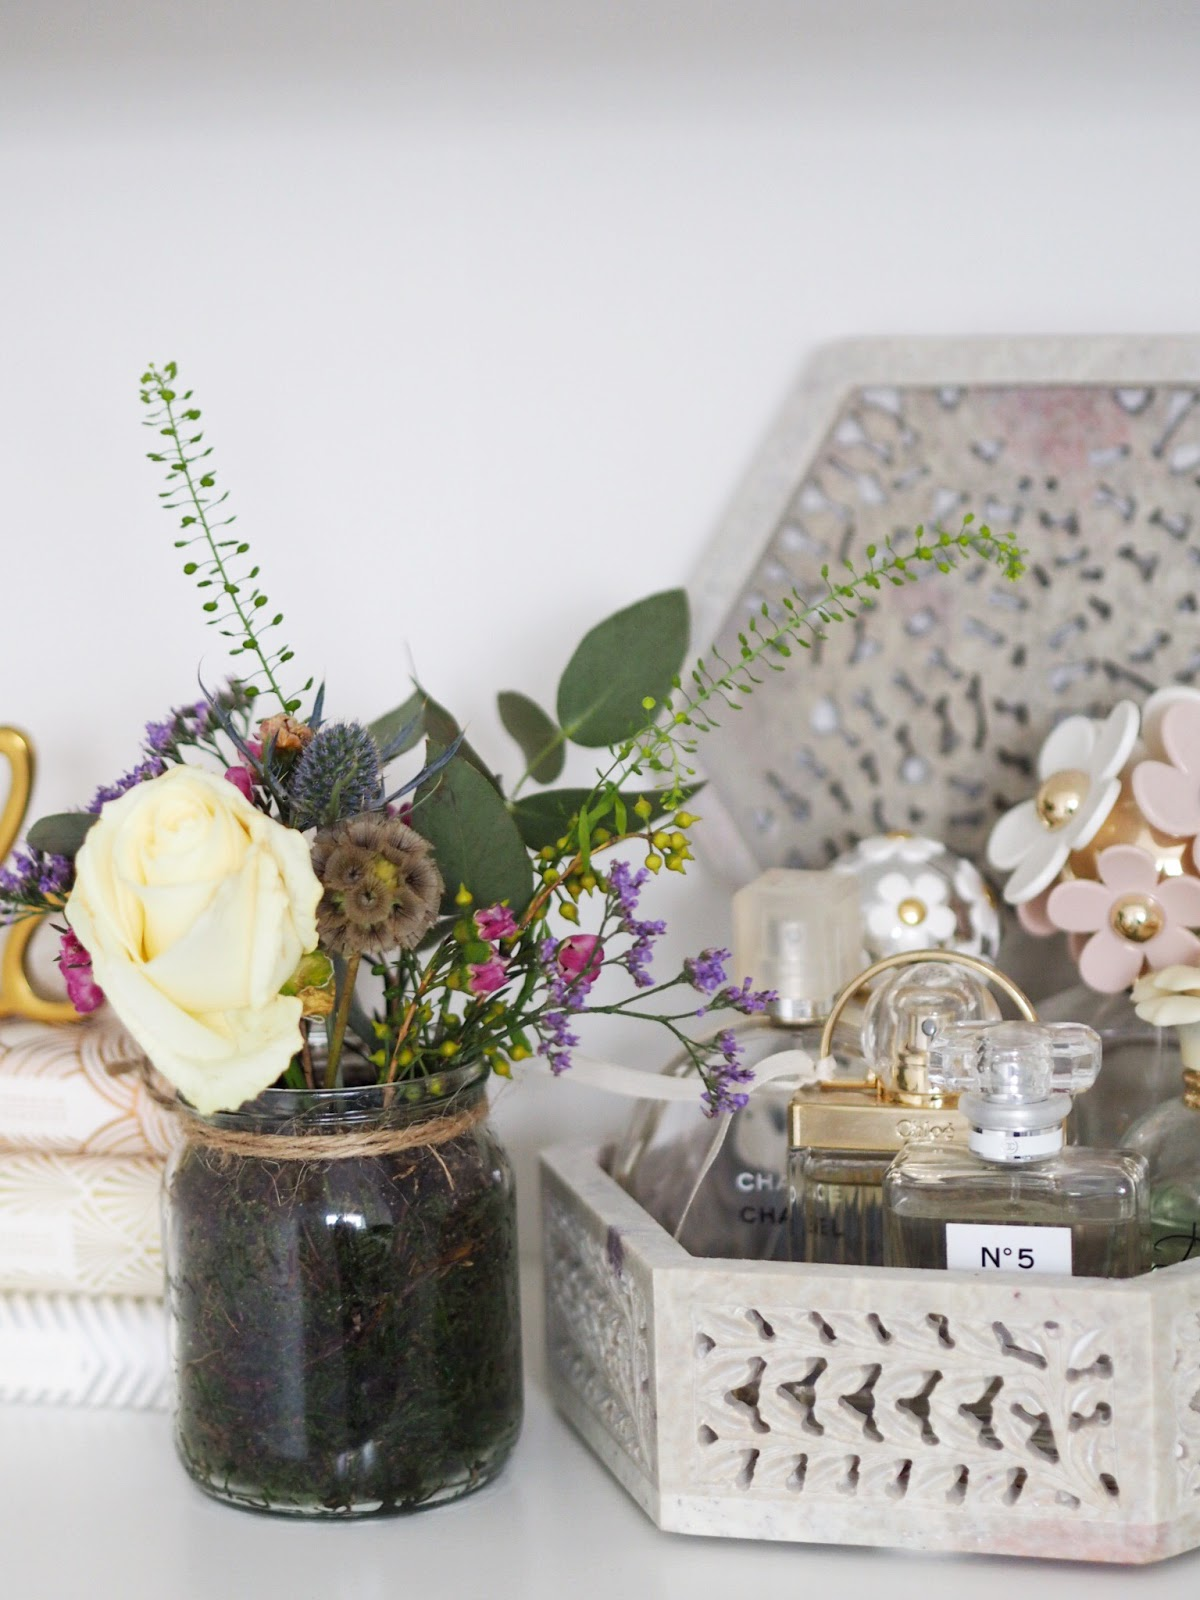 Marble Stone Ornate Hexagonal Box Filled with Perfume with Floral Posy with White Rose